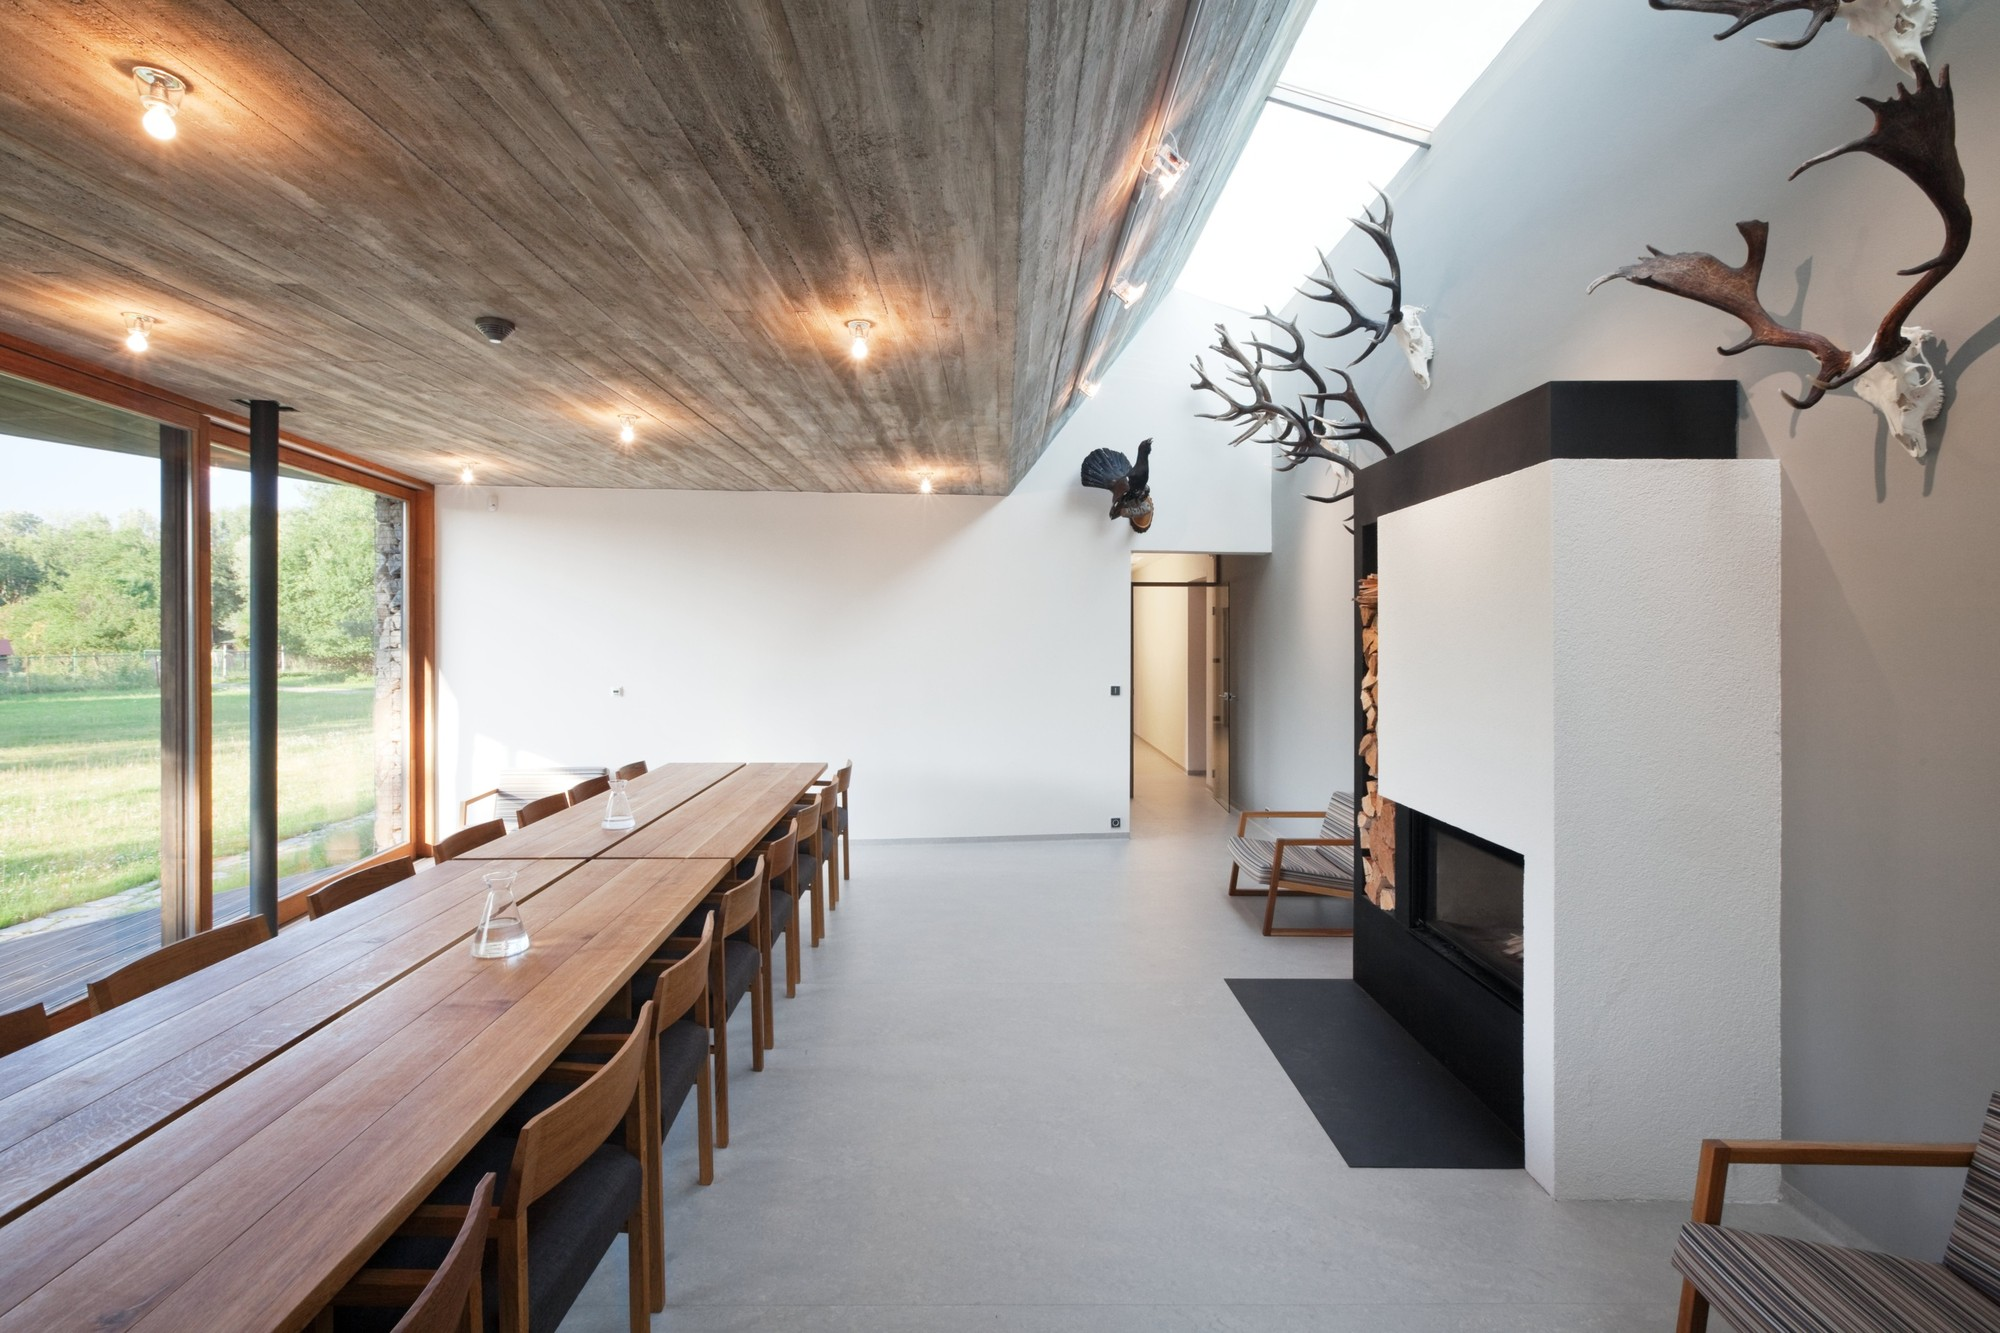 Hunting Lodge / BASARCH